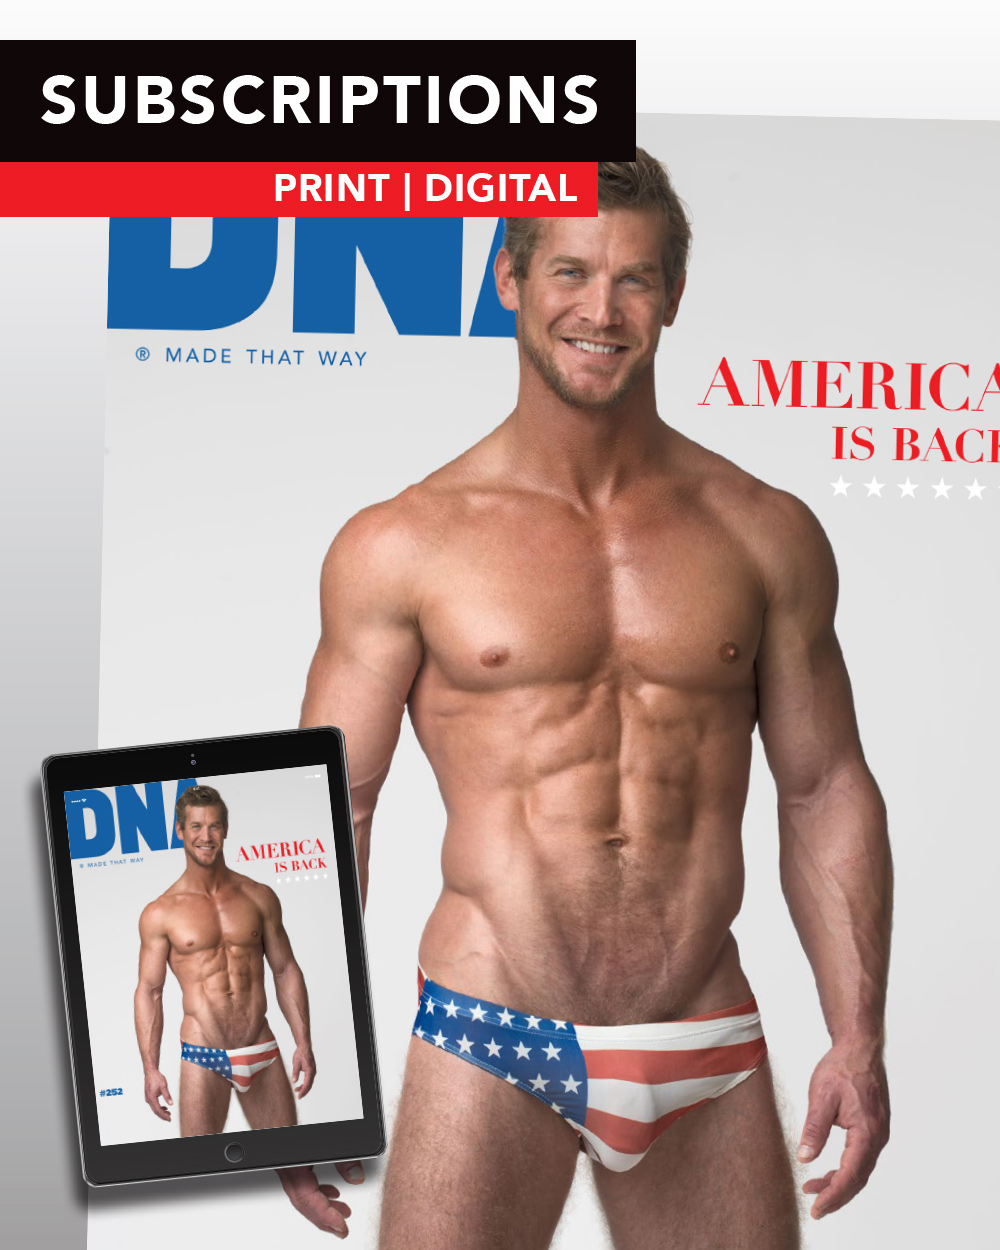 252_Subscriptions-Print-and-Digital-Feature